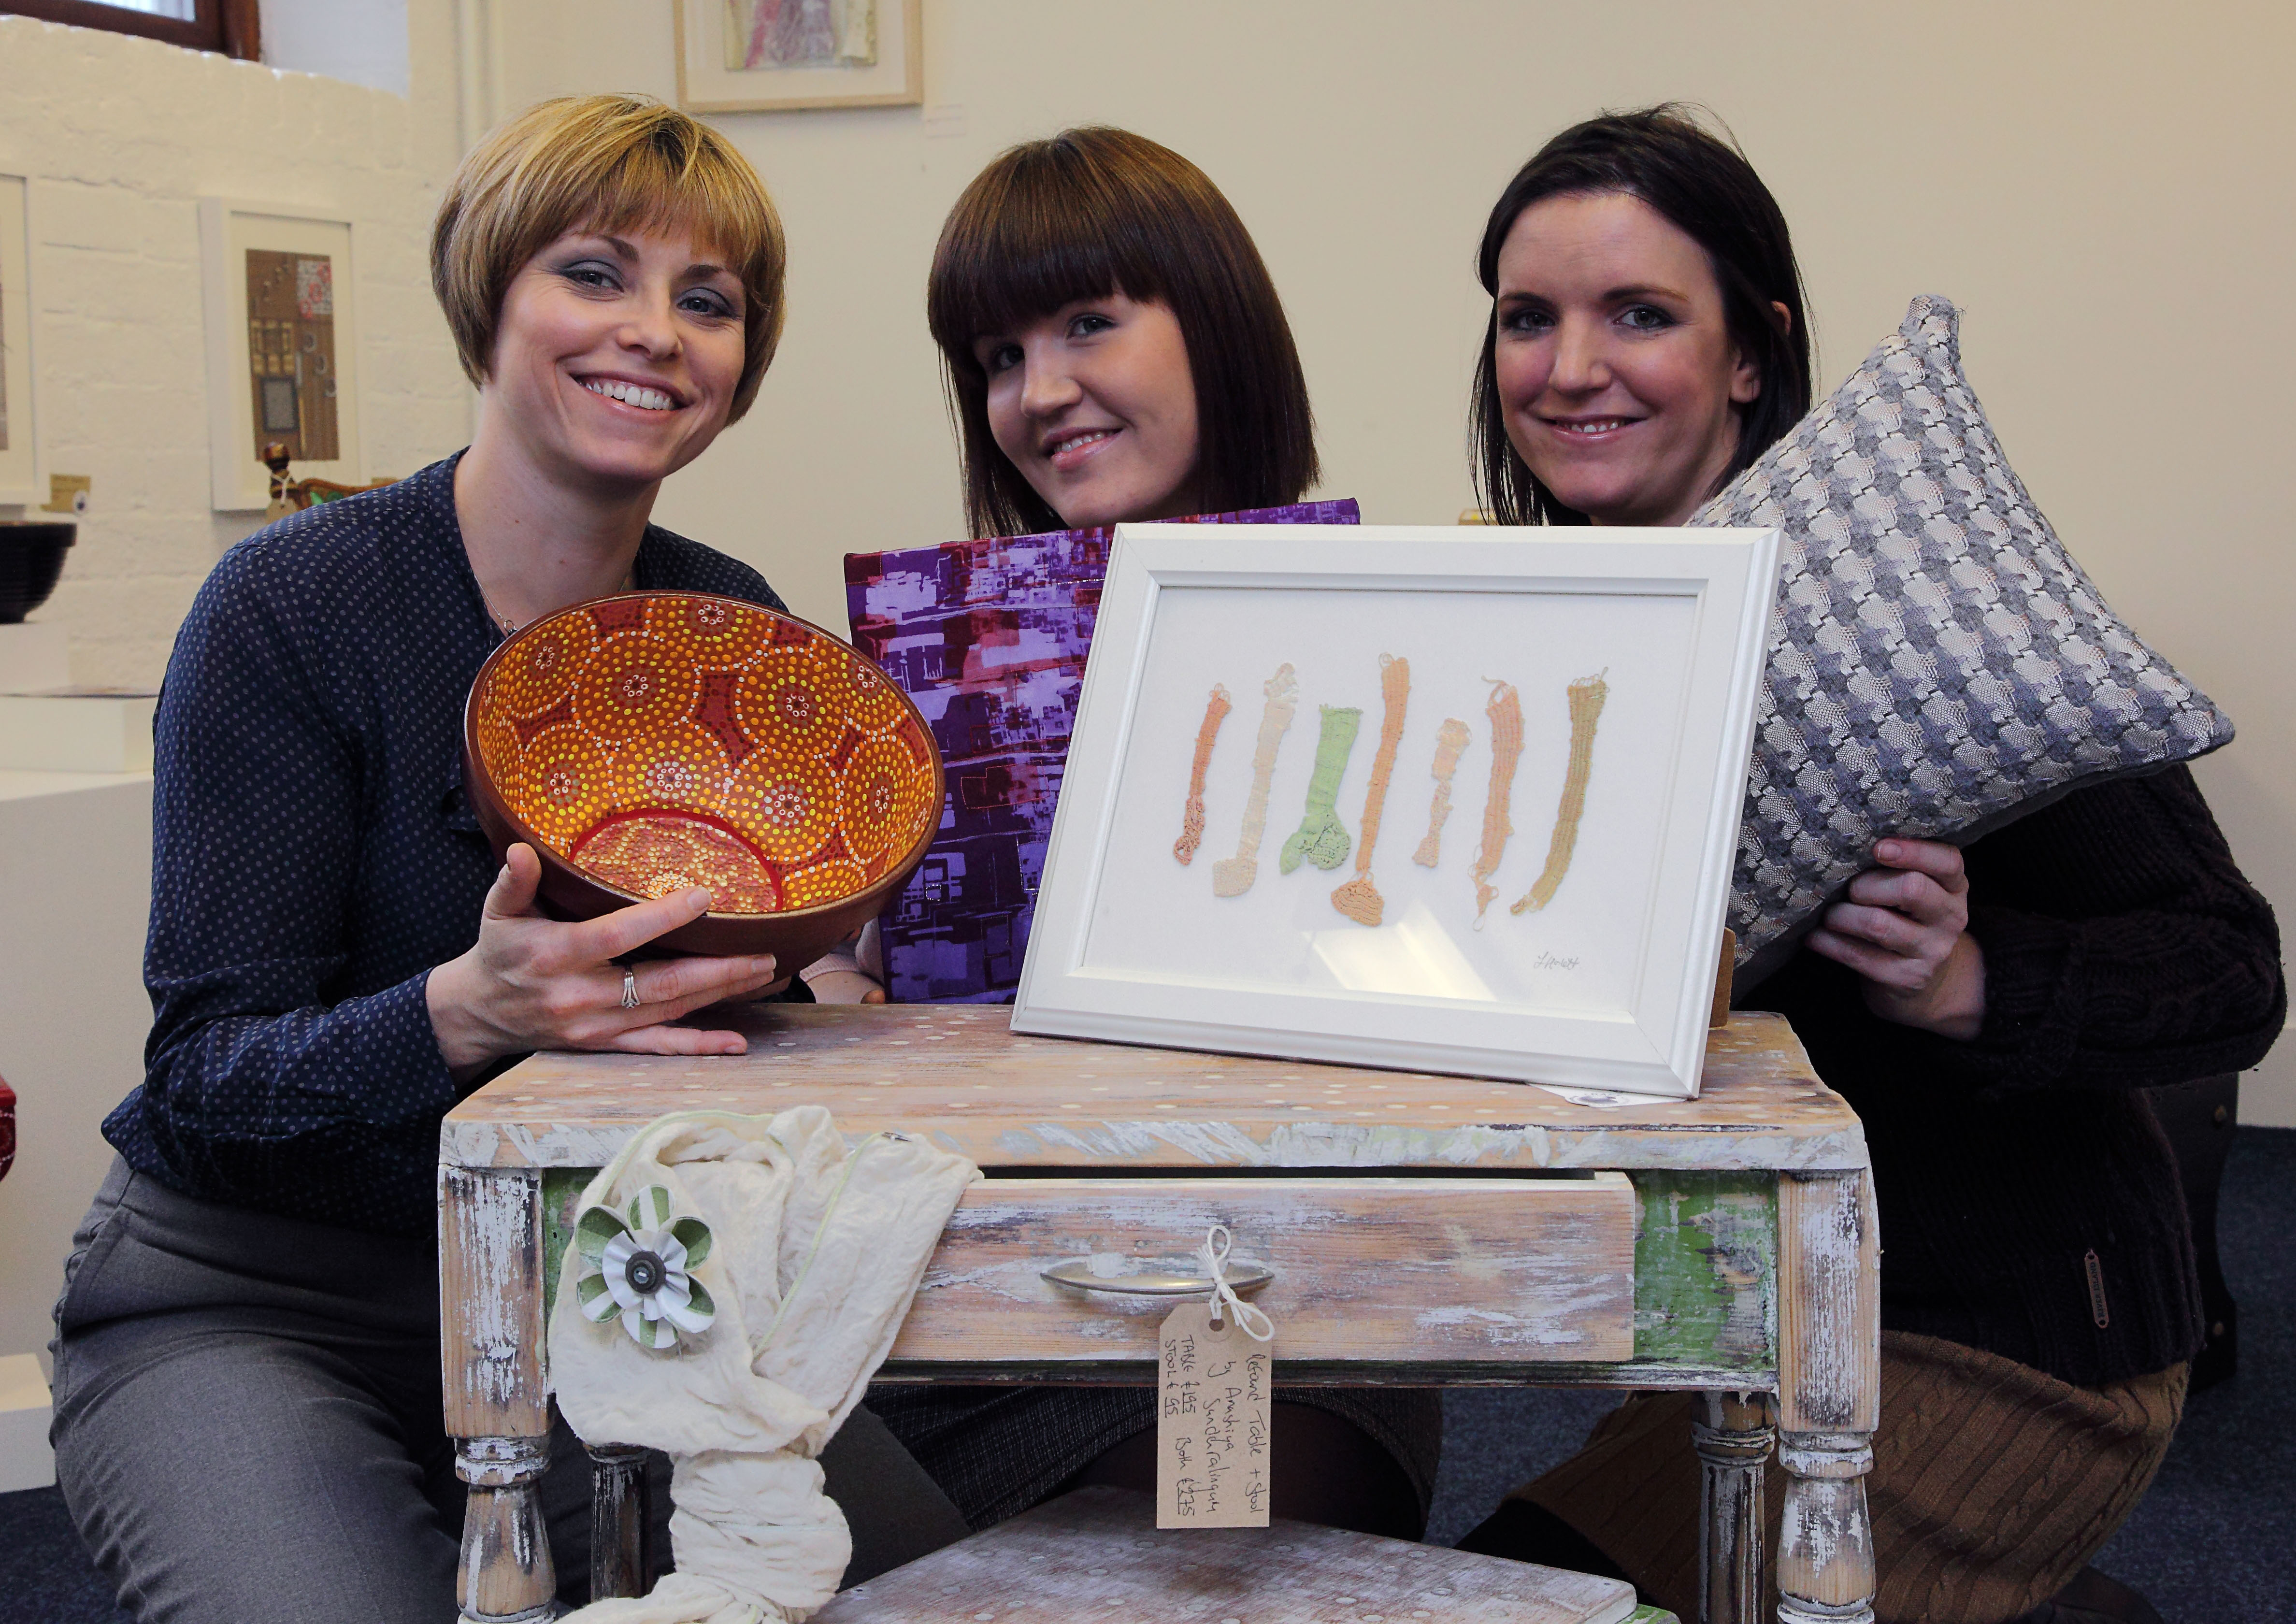 New exhibition is Making Christmas Special